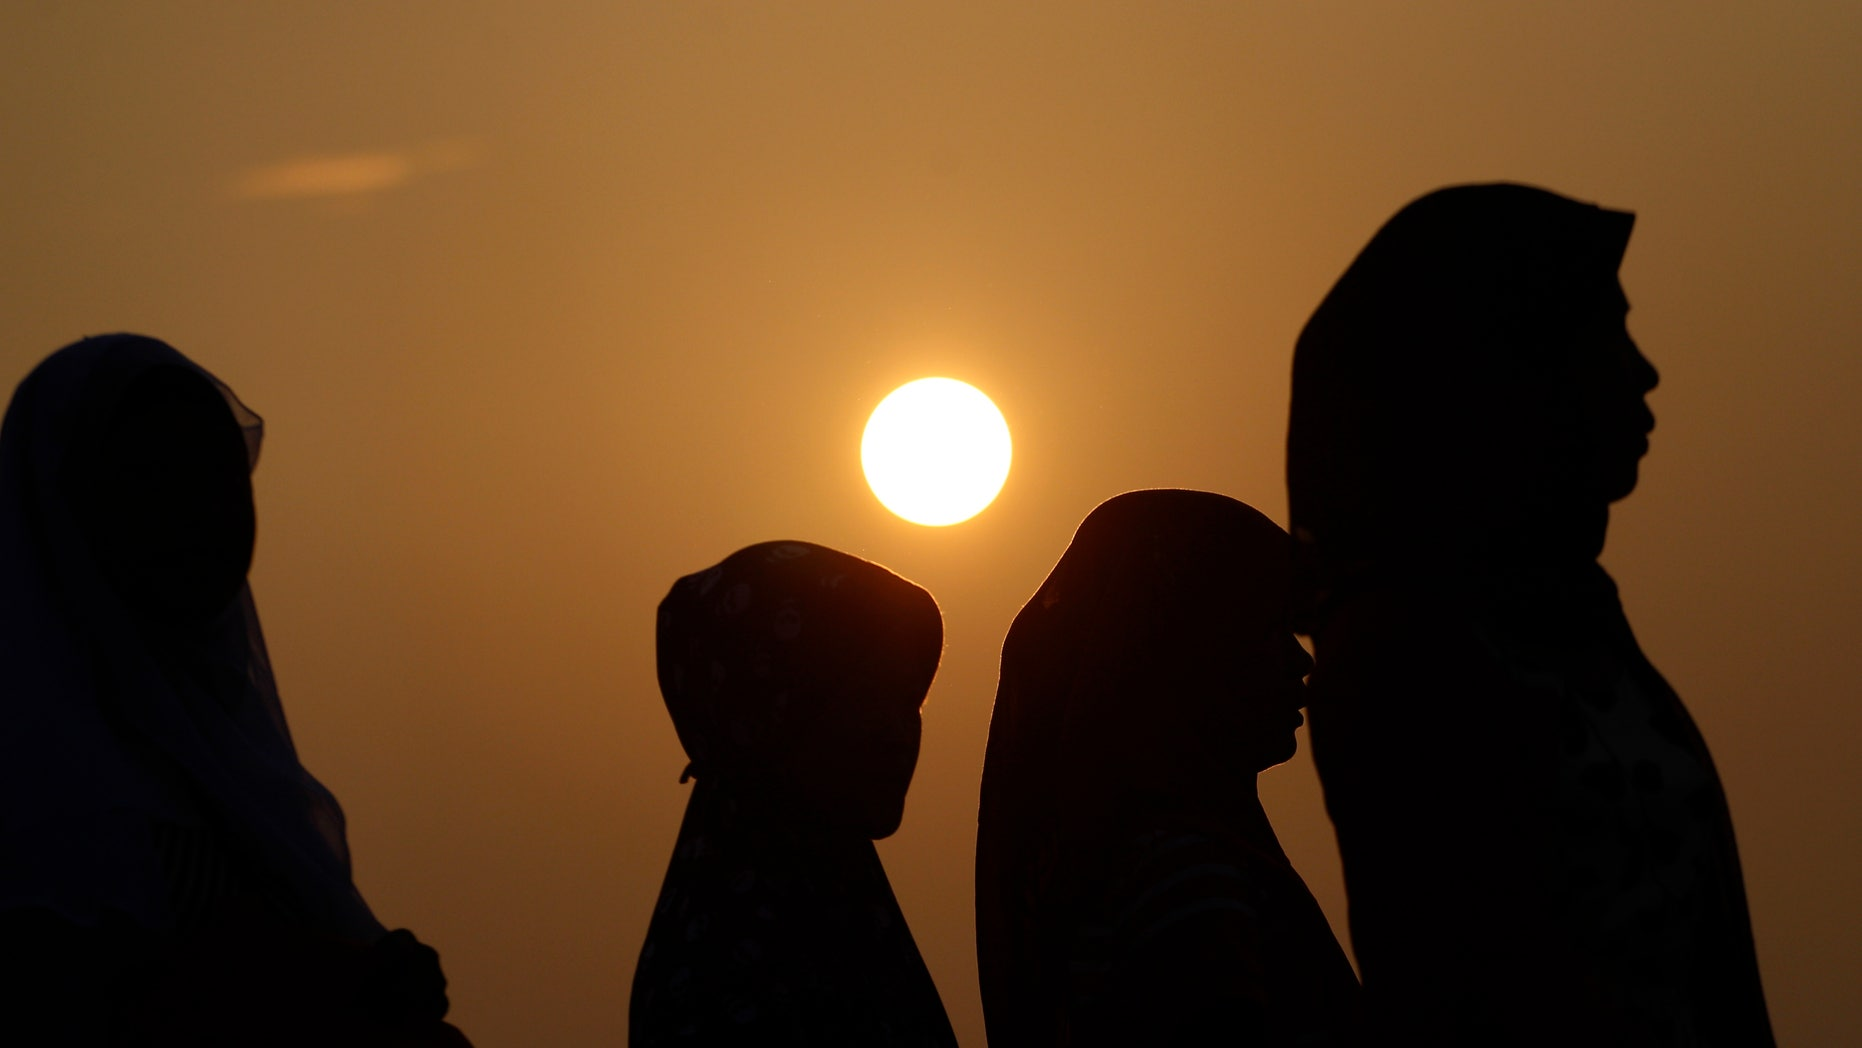 Indonesian Muslim women walk before Eid al-Fitr prayer that marks the end of the holy fasting month of Ramadan  in Jakarta, Indonesia, Thursday, Aug. 8, 2013. (AP Photo/Achmad Ibrahim)